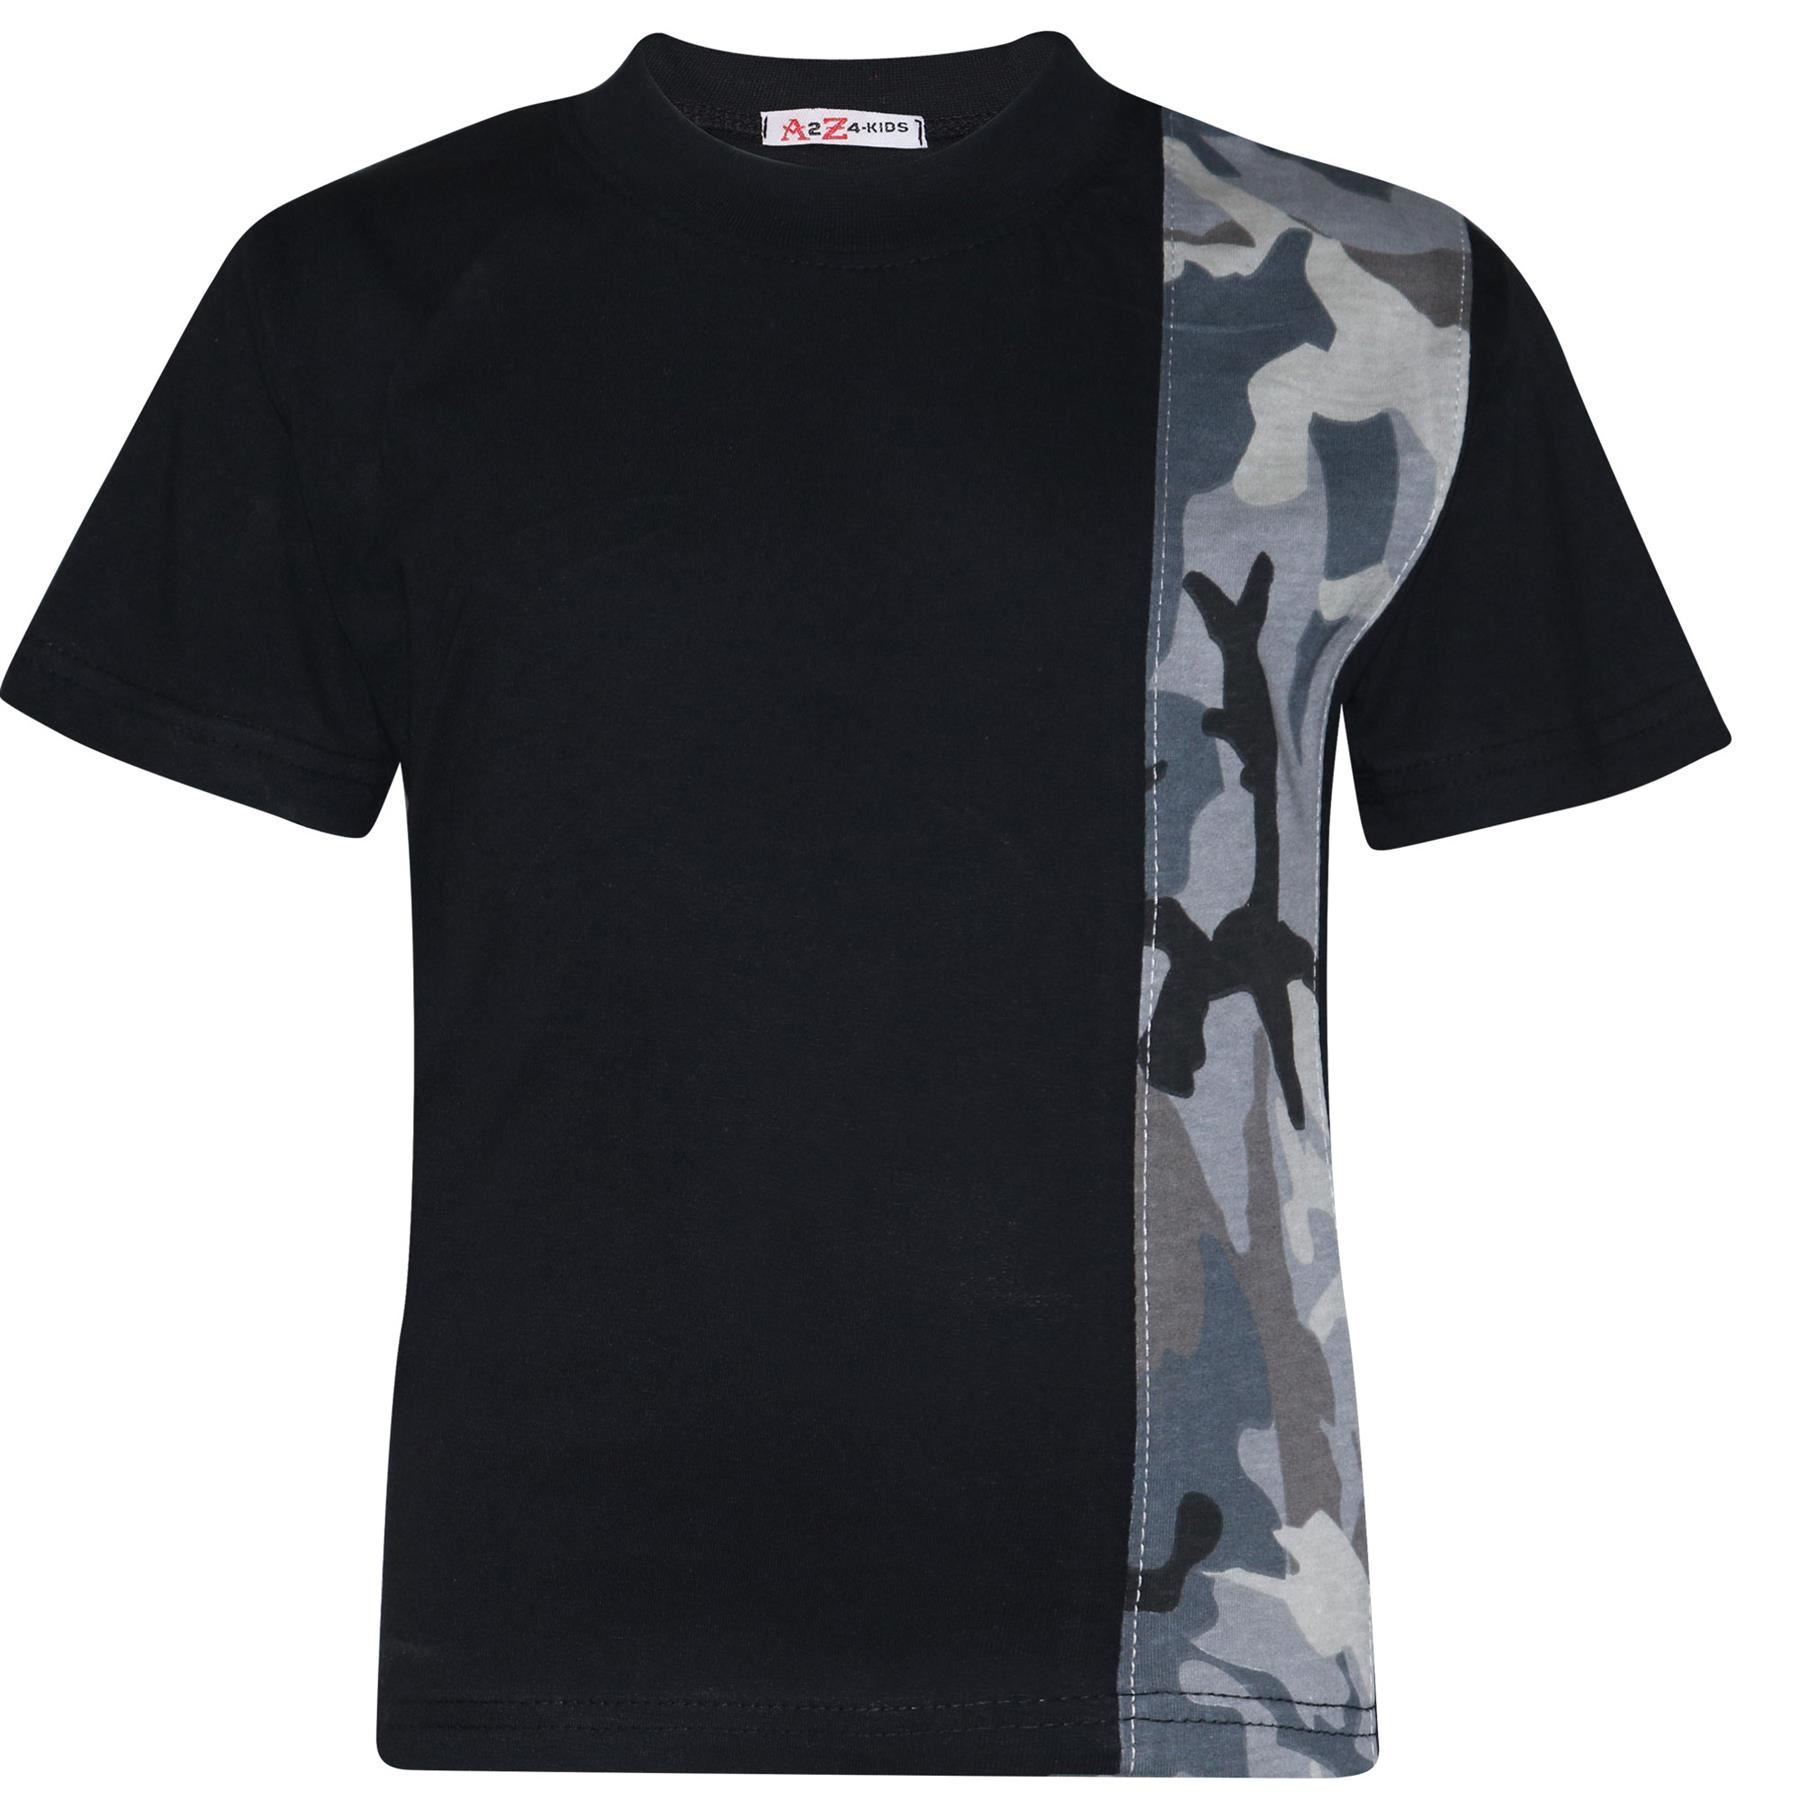 Kids Boys T Shirt Shorts Camouflage Charcoal Contrast Panel Top Summer Short Set